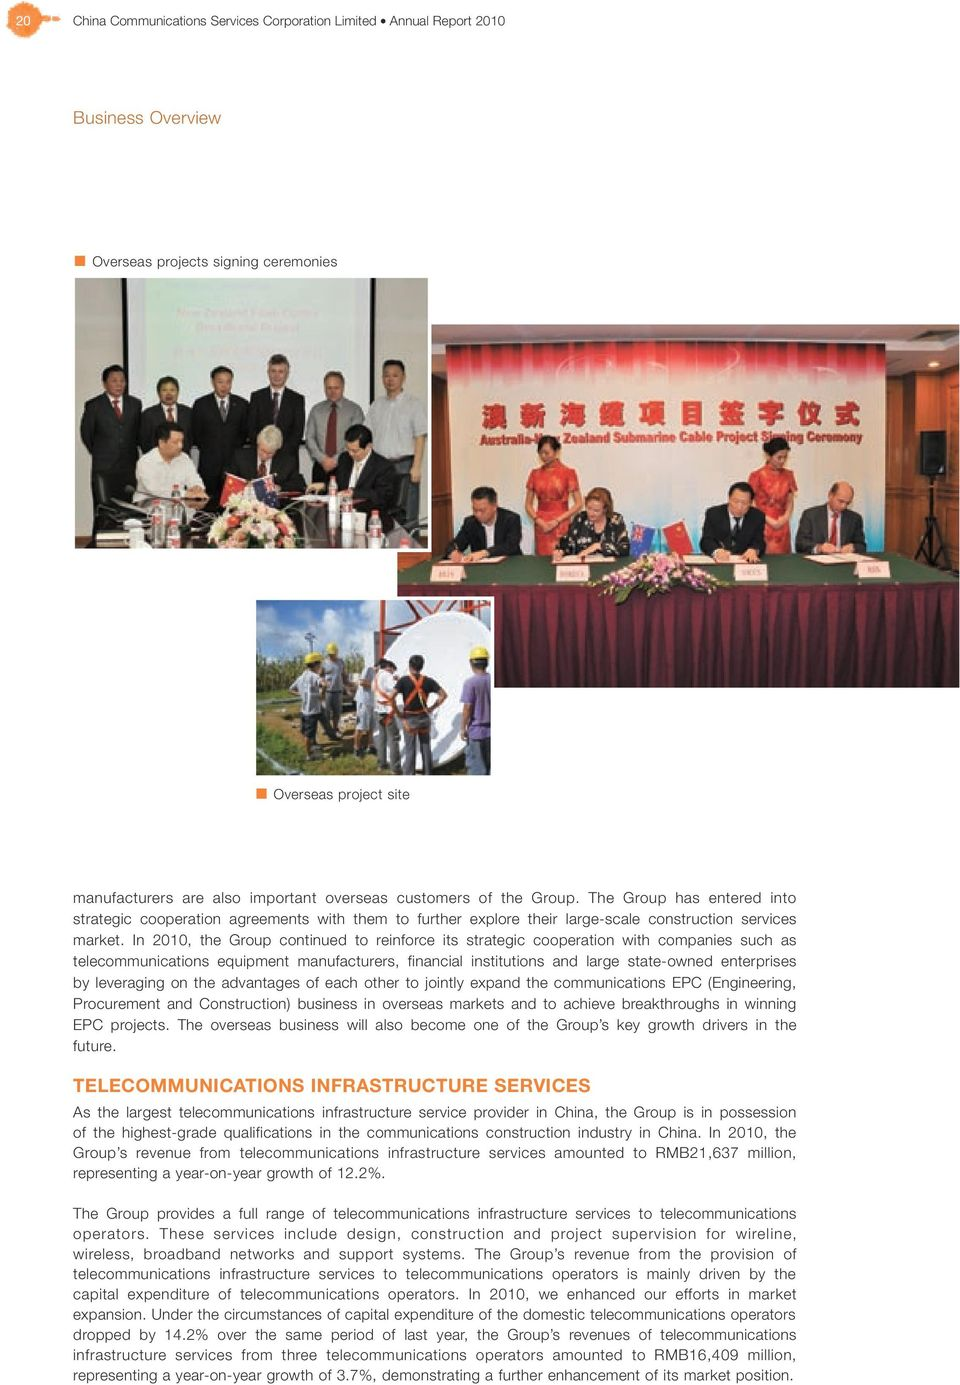 In 2010, the Group continued to reinforce its strategic cooperation with companies such as telecommunications equipment manufacturers, financial institutions and large state-owned enterprises by